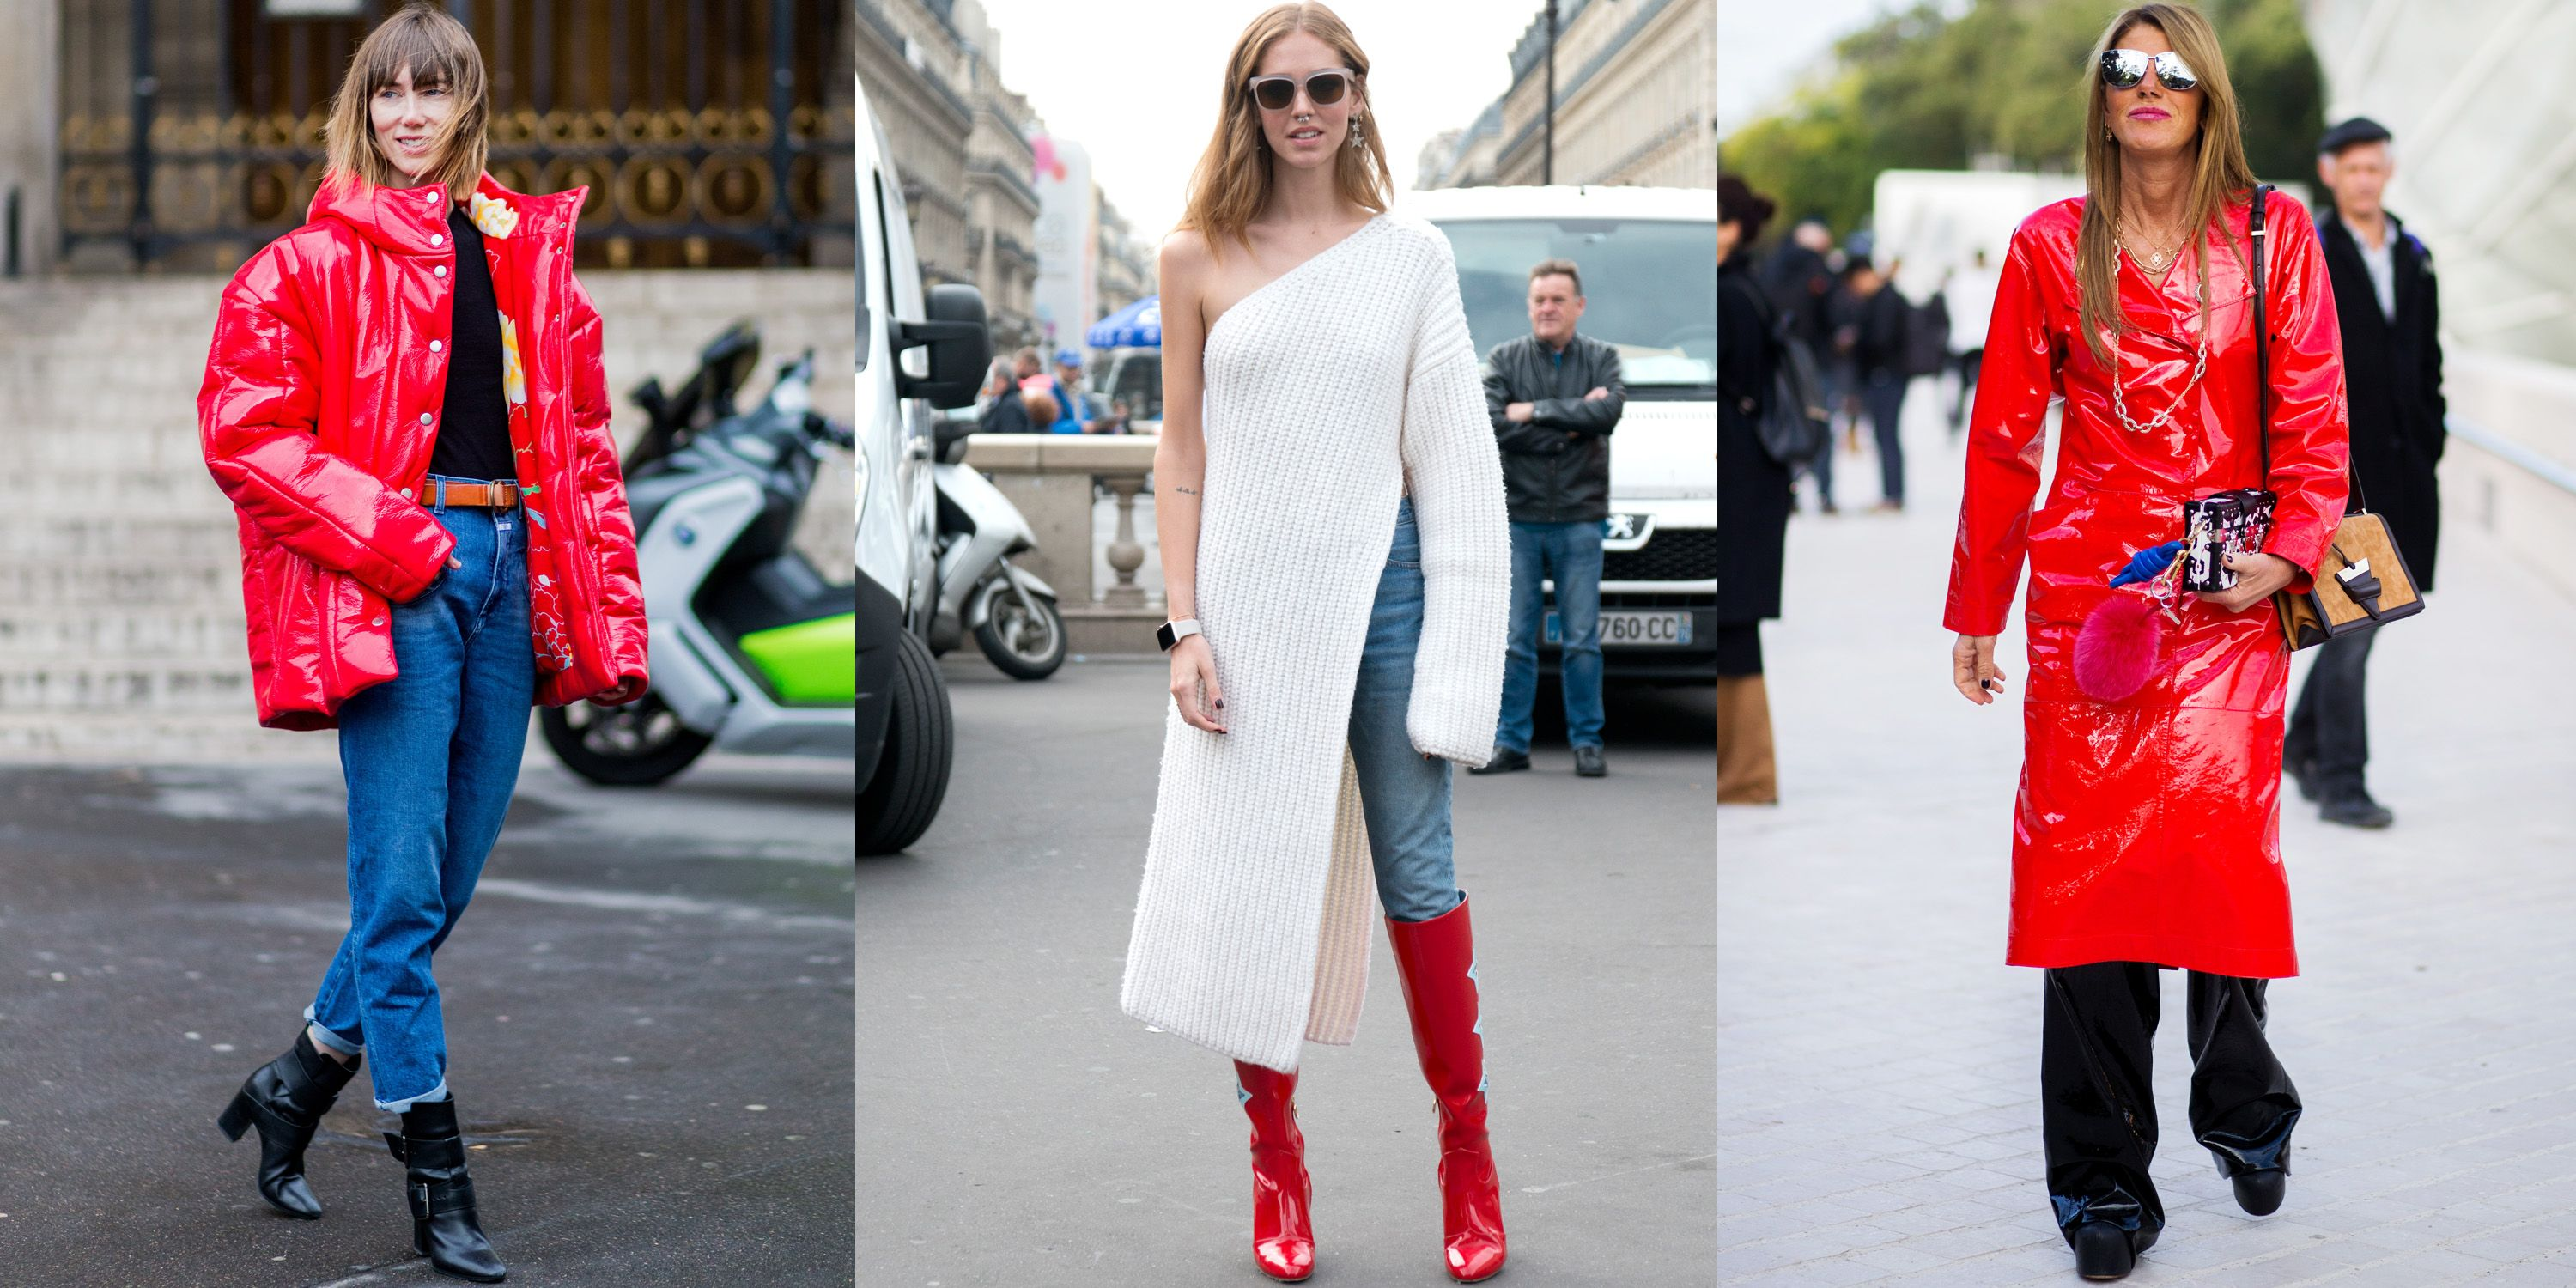 <p>Anya Ziourova, Chiara Ferragni and Anna dello Russo show the serious impact of red patent on otherwise straightforward looks.</p>